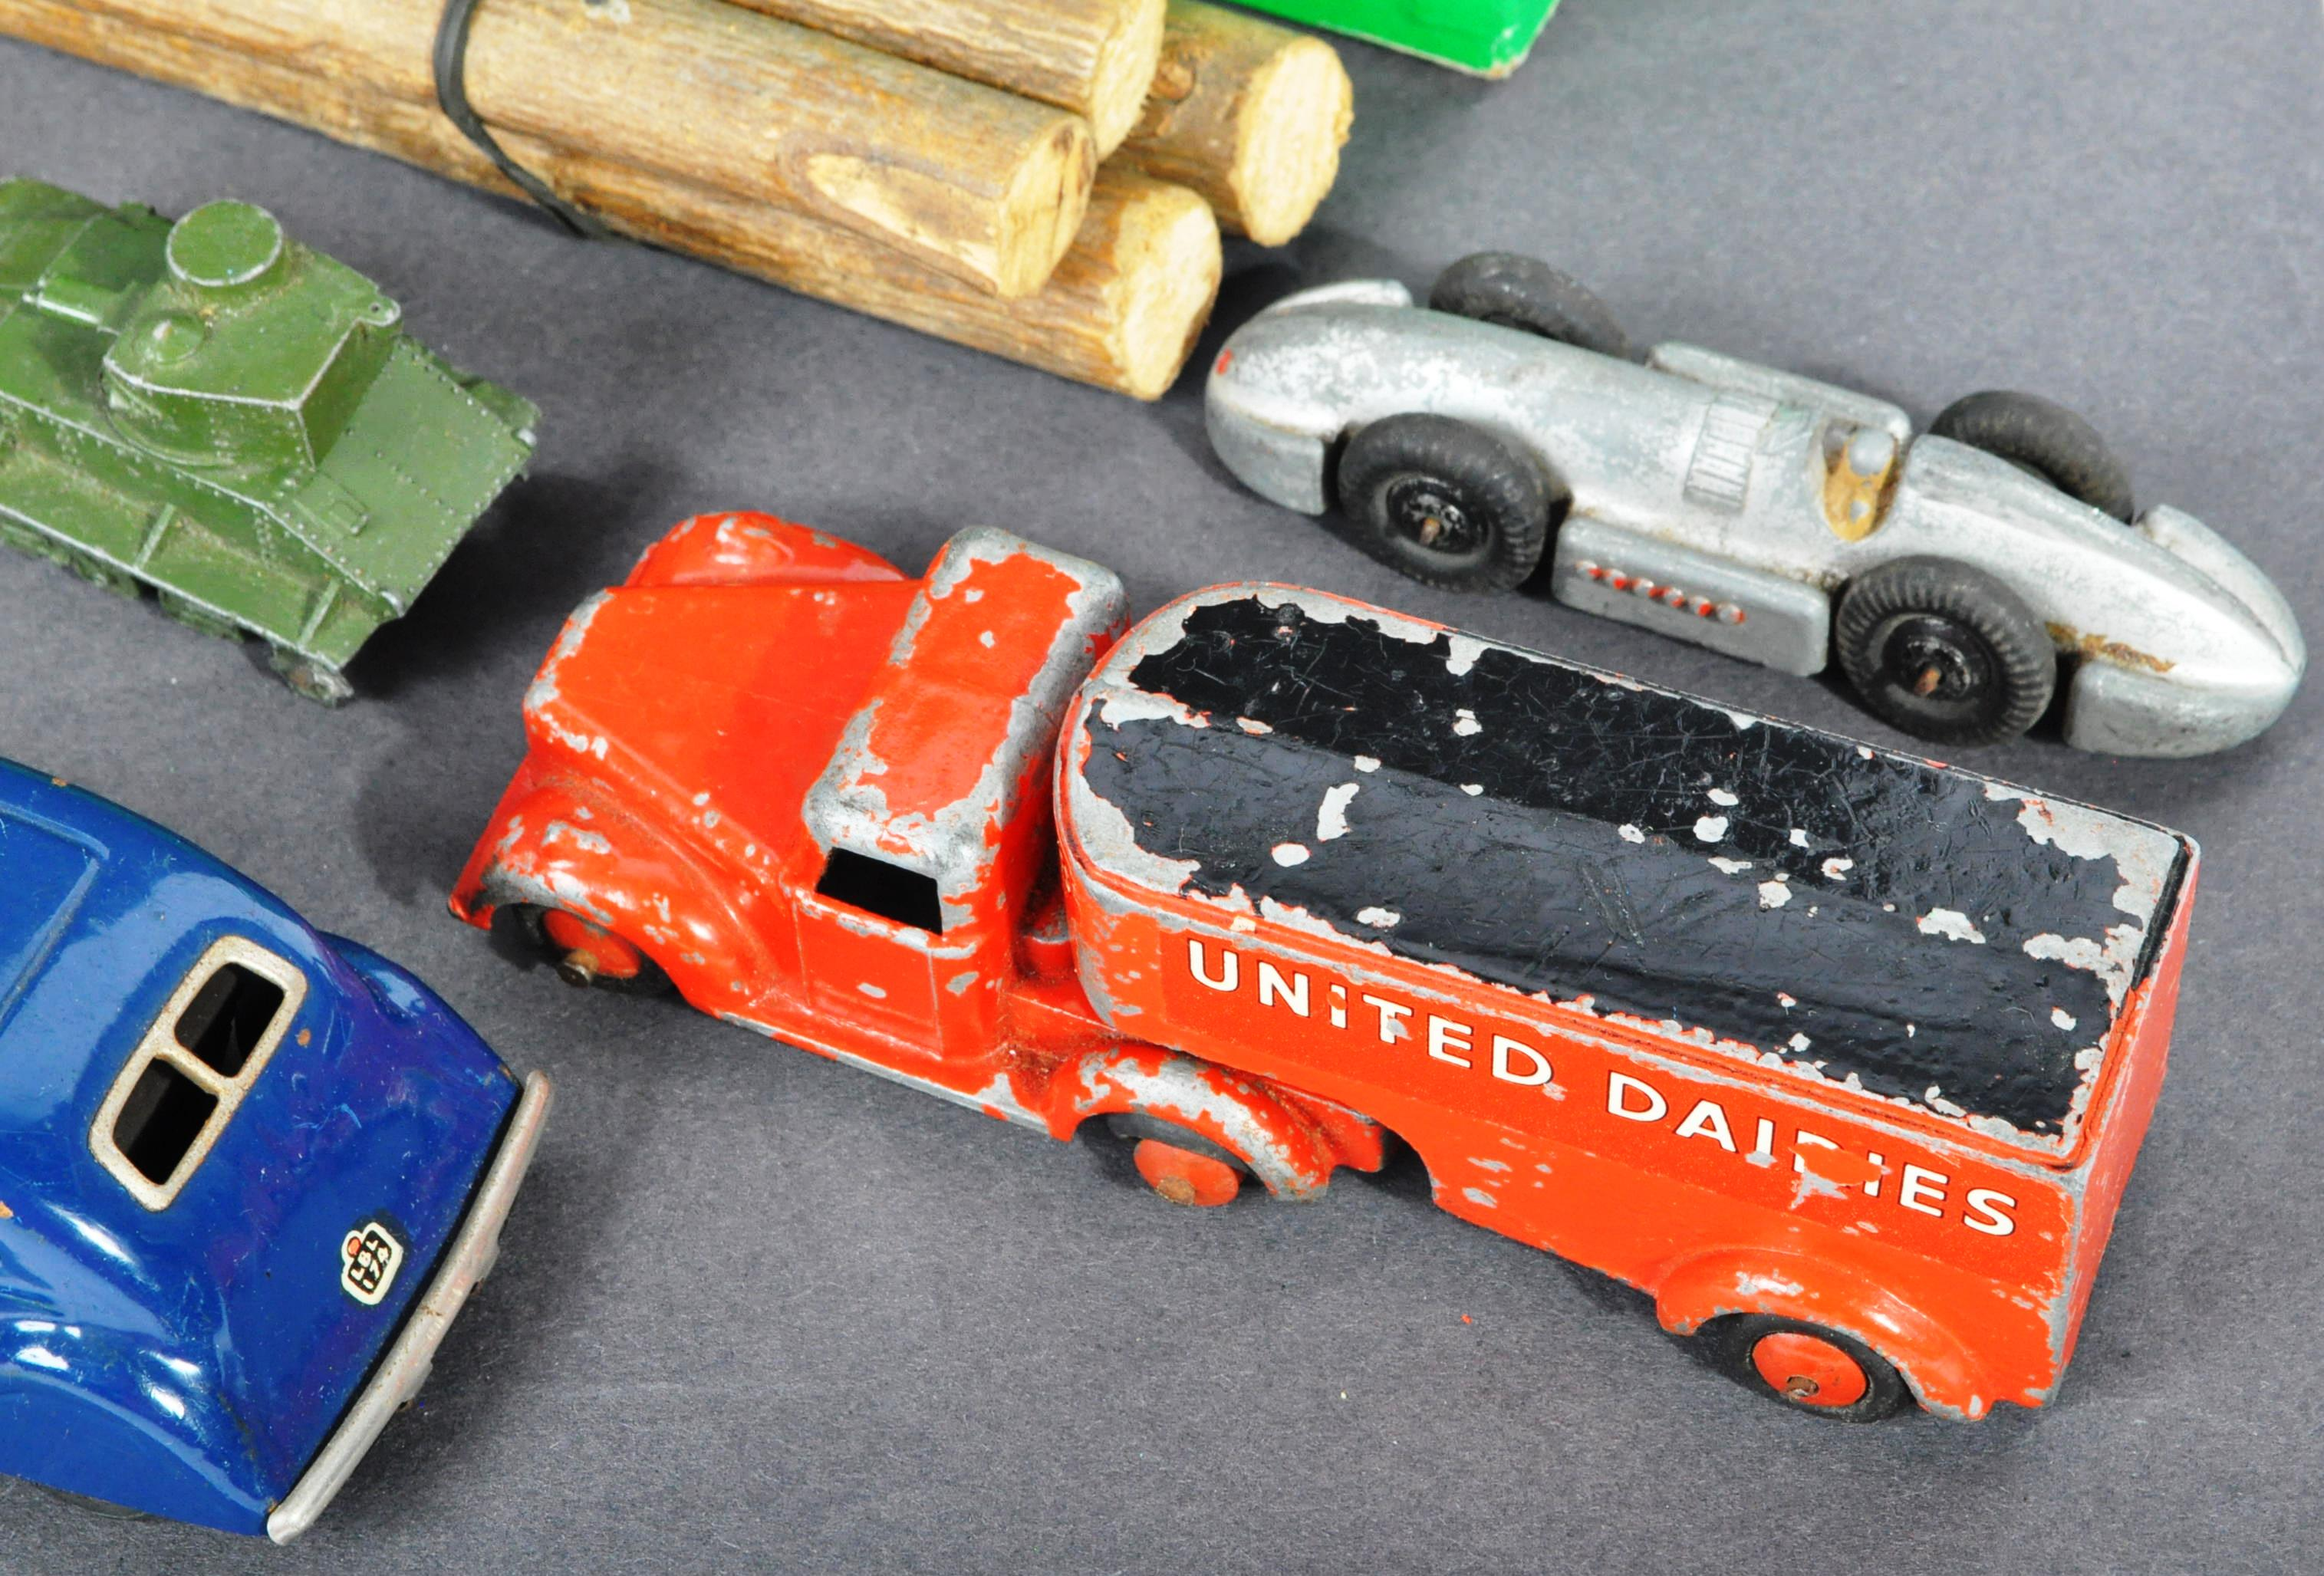 DIECAST - COLLECTION OF ASSORTED ANTIQUE / VINTAGE DIECAST - Image 8 of 9